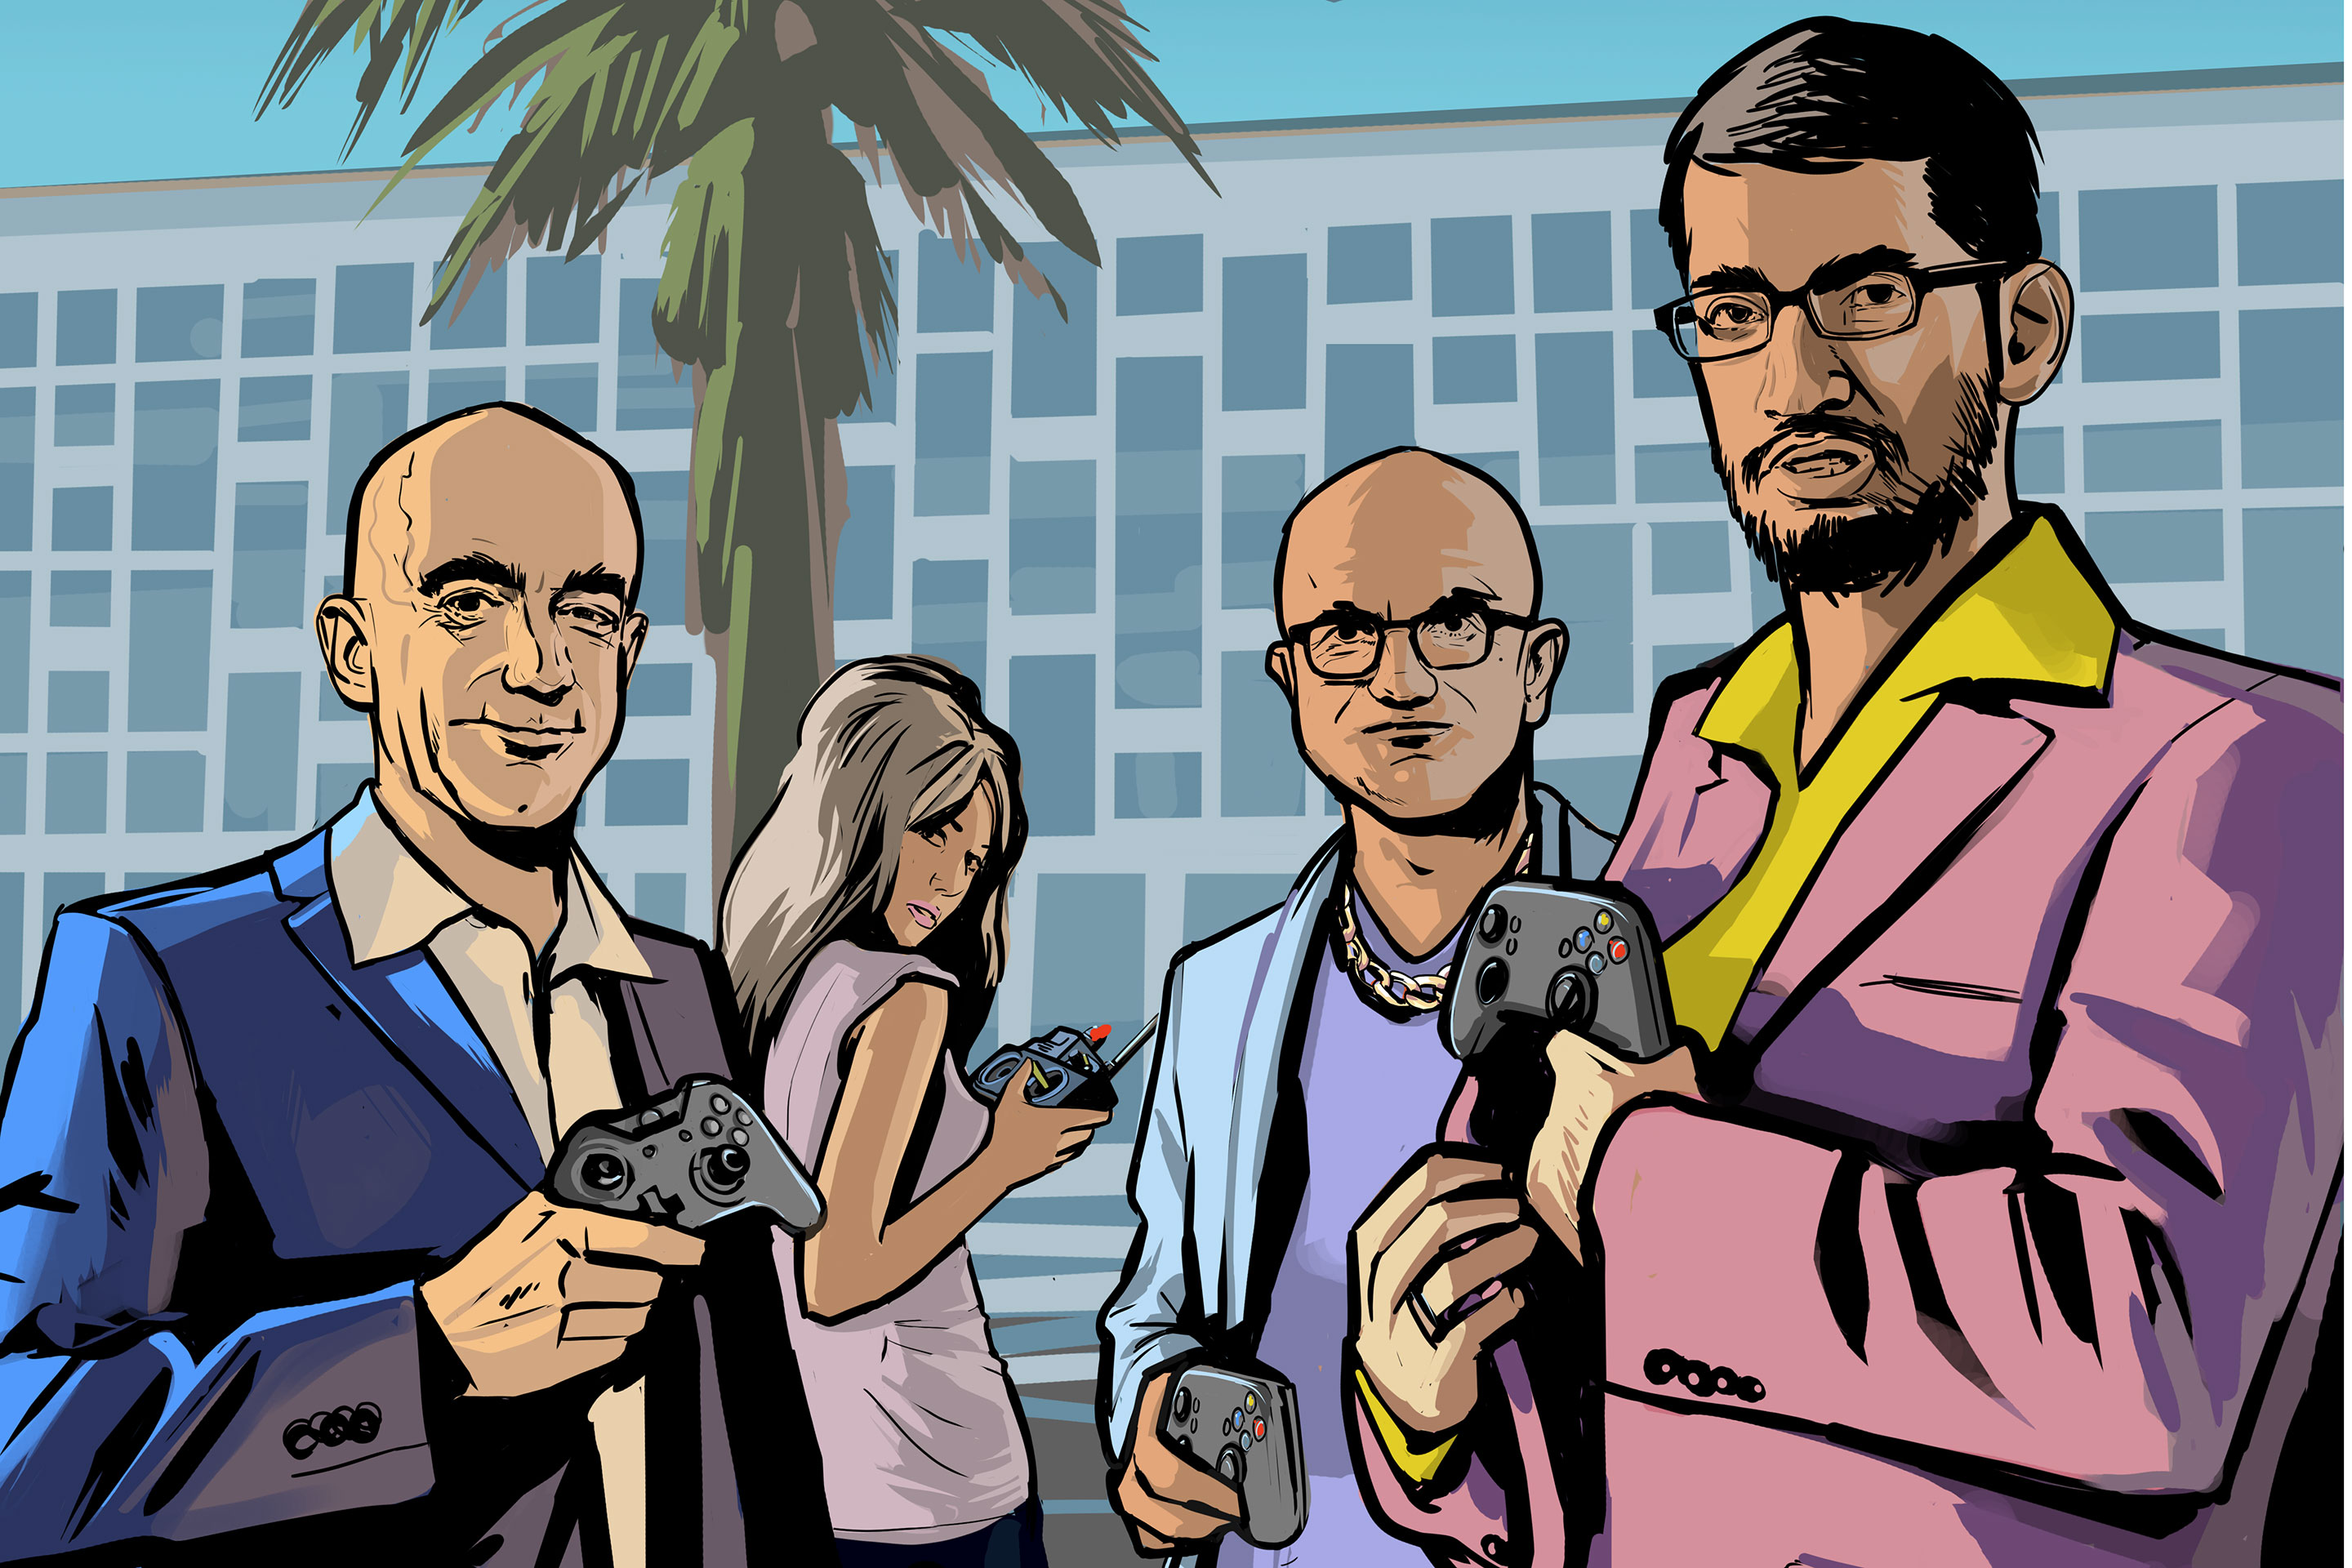 Look familiar? We asked Stephen Bliss, the illustrator for Grand Theft Auto: Vice City and others, to imagine the Big Three cloud CEOs as 1980s urban crime lords. Bitchin'.